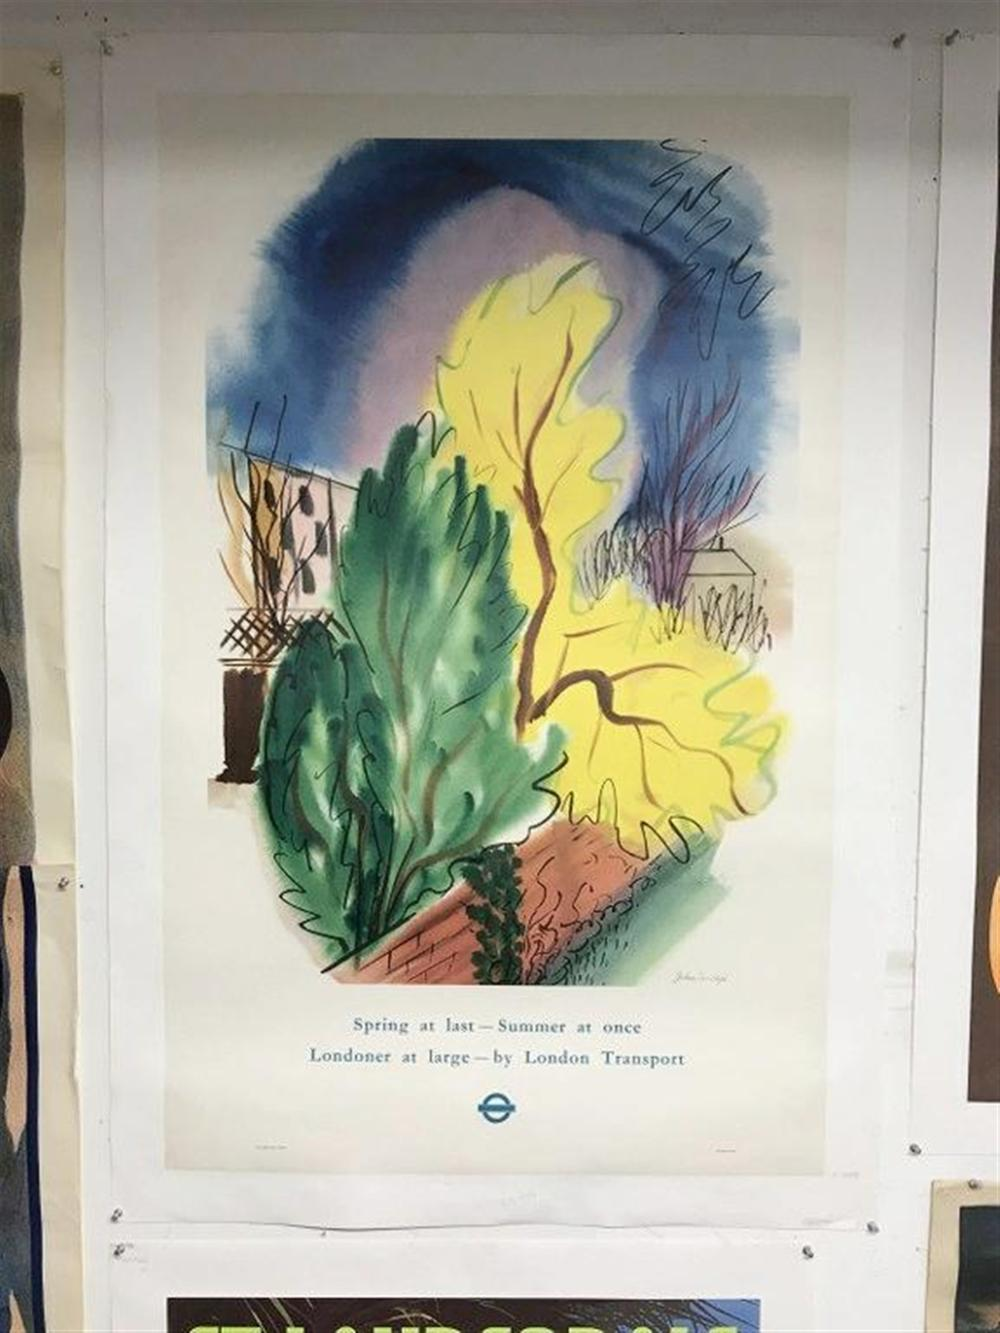 "POSTER- LONDON TRANSPORT TRAVEL POSTER, SPRING AT LAST-SUMMER AT ONCE LONDONER AT LARGE- BY LONDON TRANSPORT, LINEN BACKED, CIRCA 1948, MEASURES 40"" X 25"", ARTIST IS JOHN FARLEIGH."